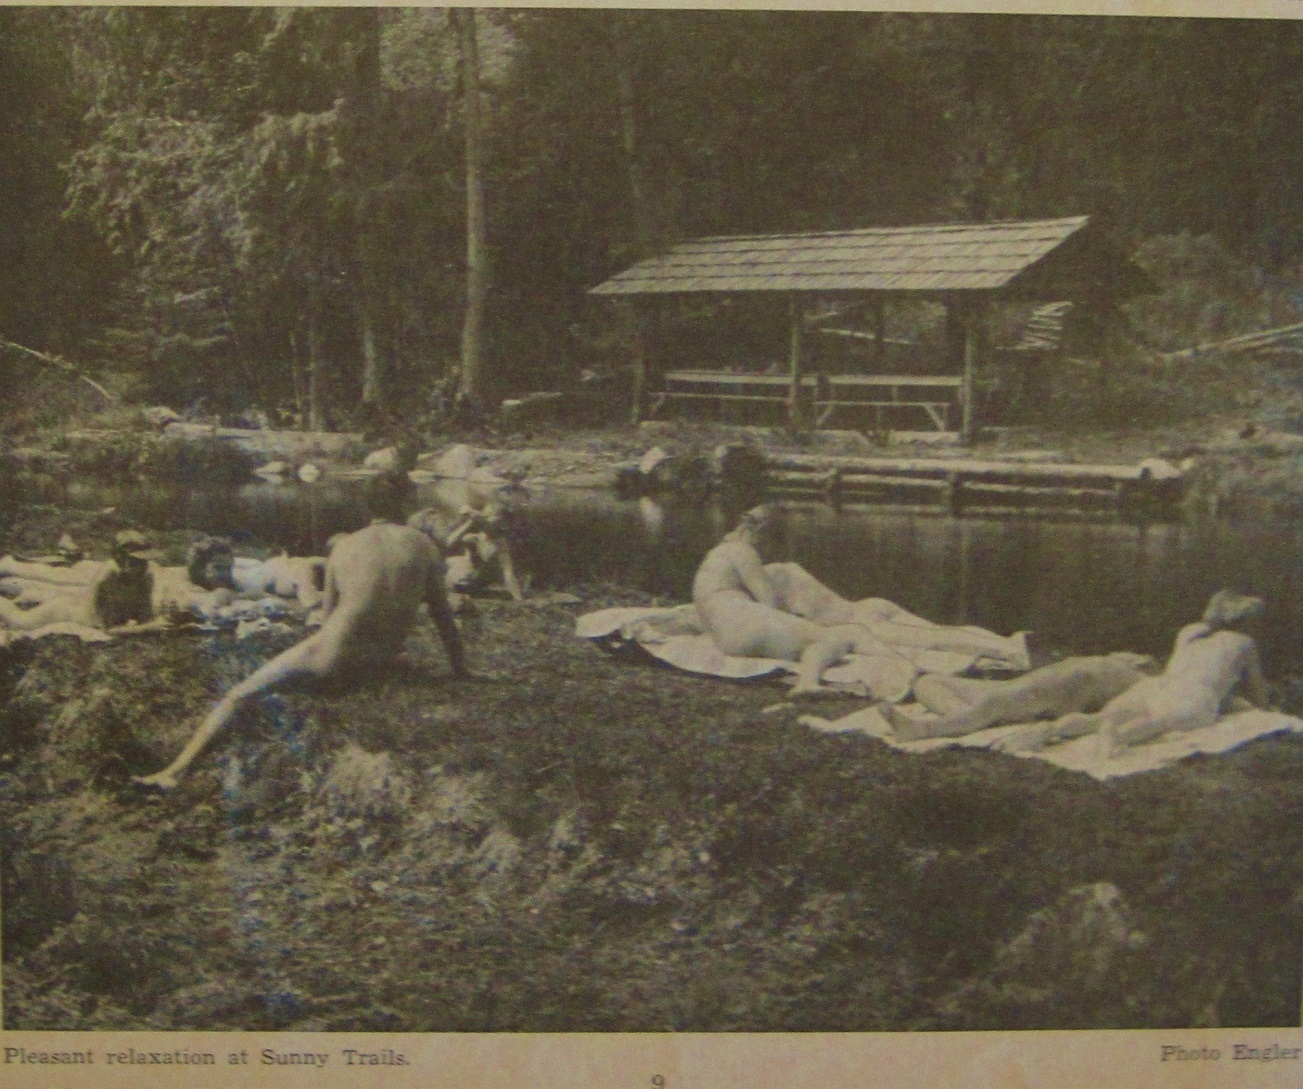 """Pleasant relaxation at Sunny Trails,"" Sunbathing for Health 11, no.9, April 1958"